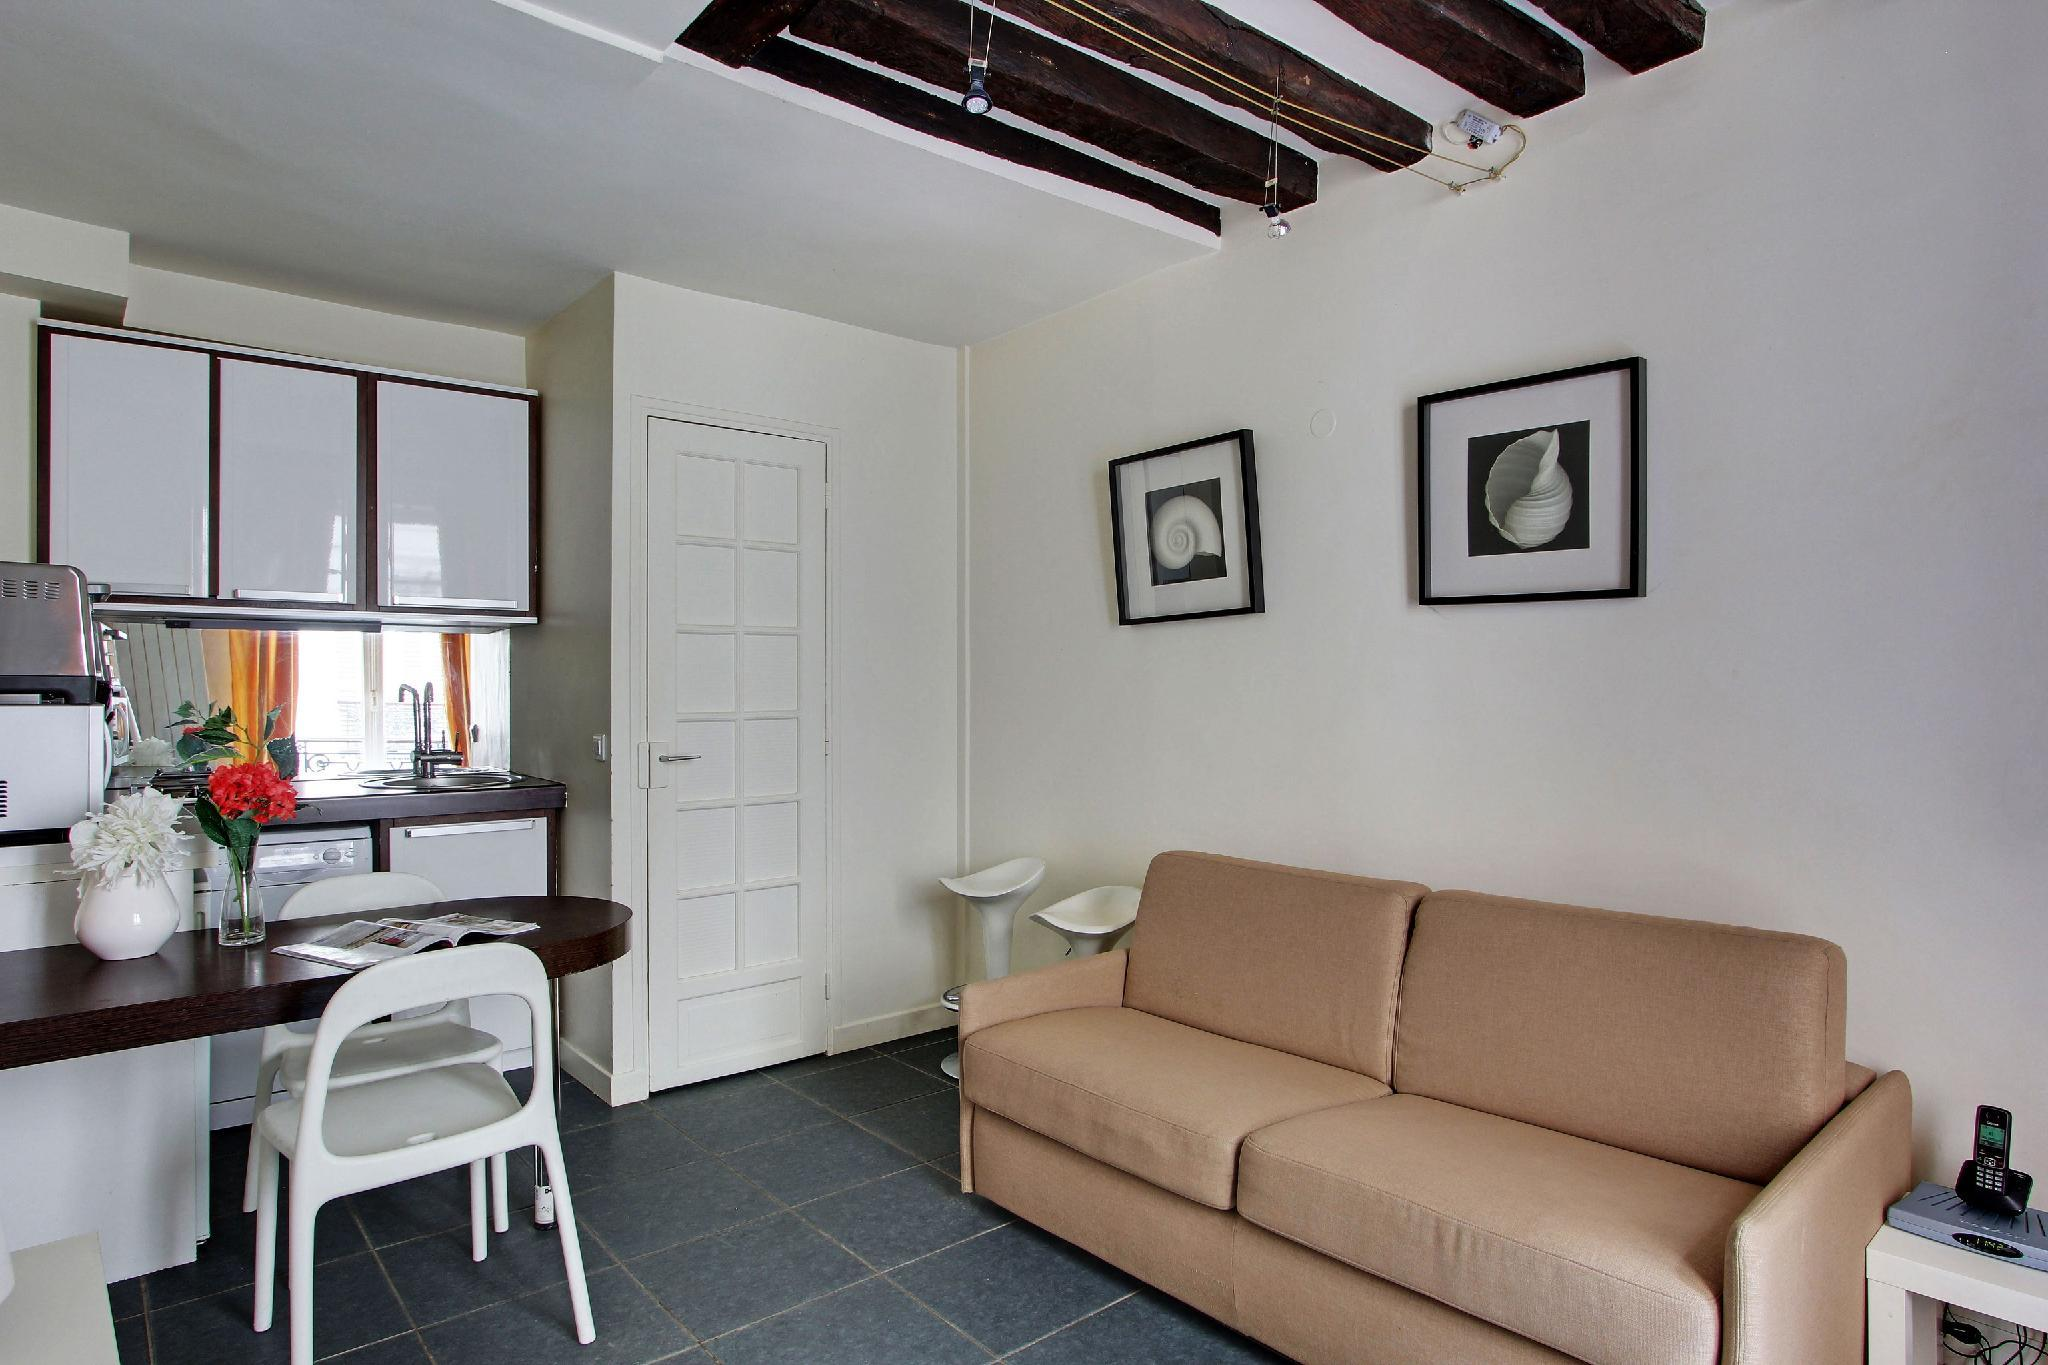 102261 - Attractive apartment for 4 people in the Montorgueil area